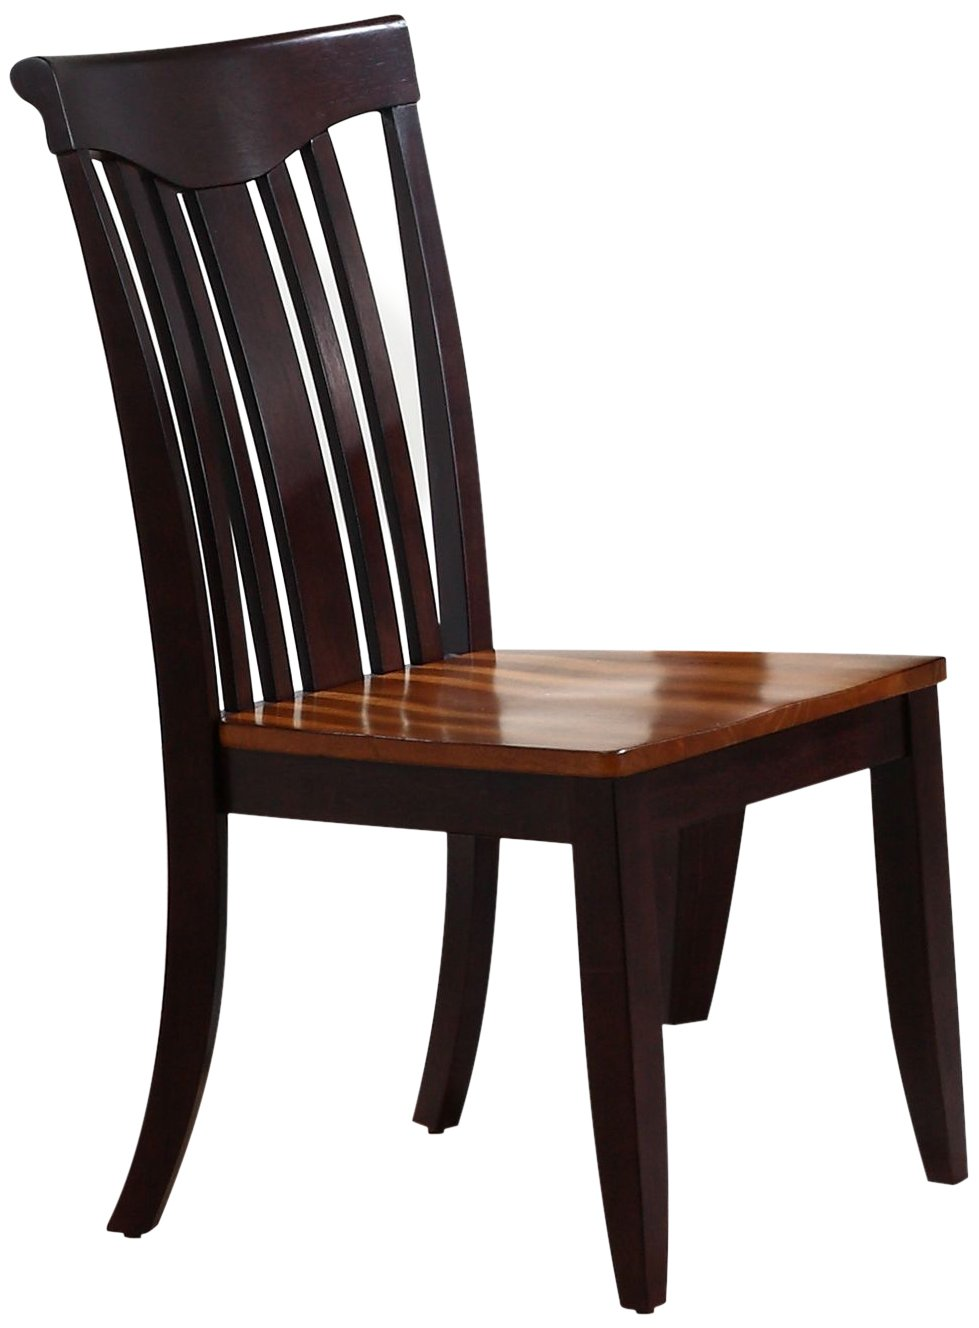 Iconic Furniture Modern Slat Back Dining Chair, Whiskey Mocha Finish SET OF 2